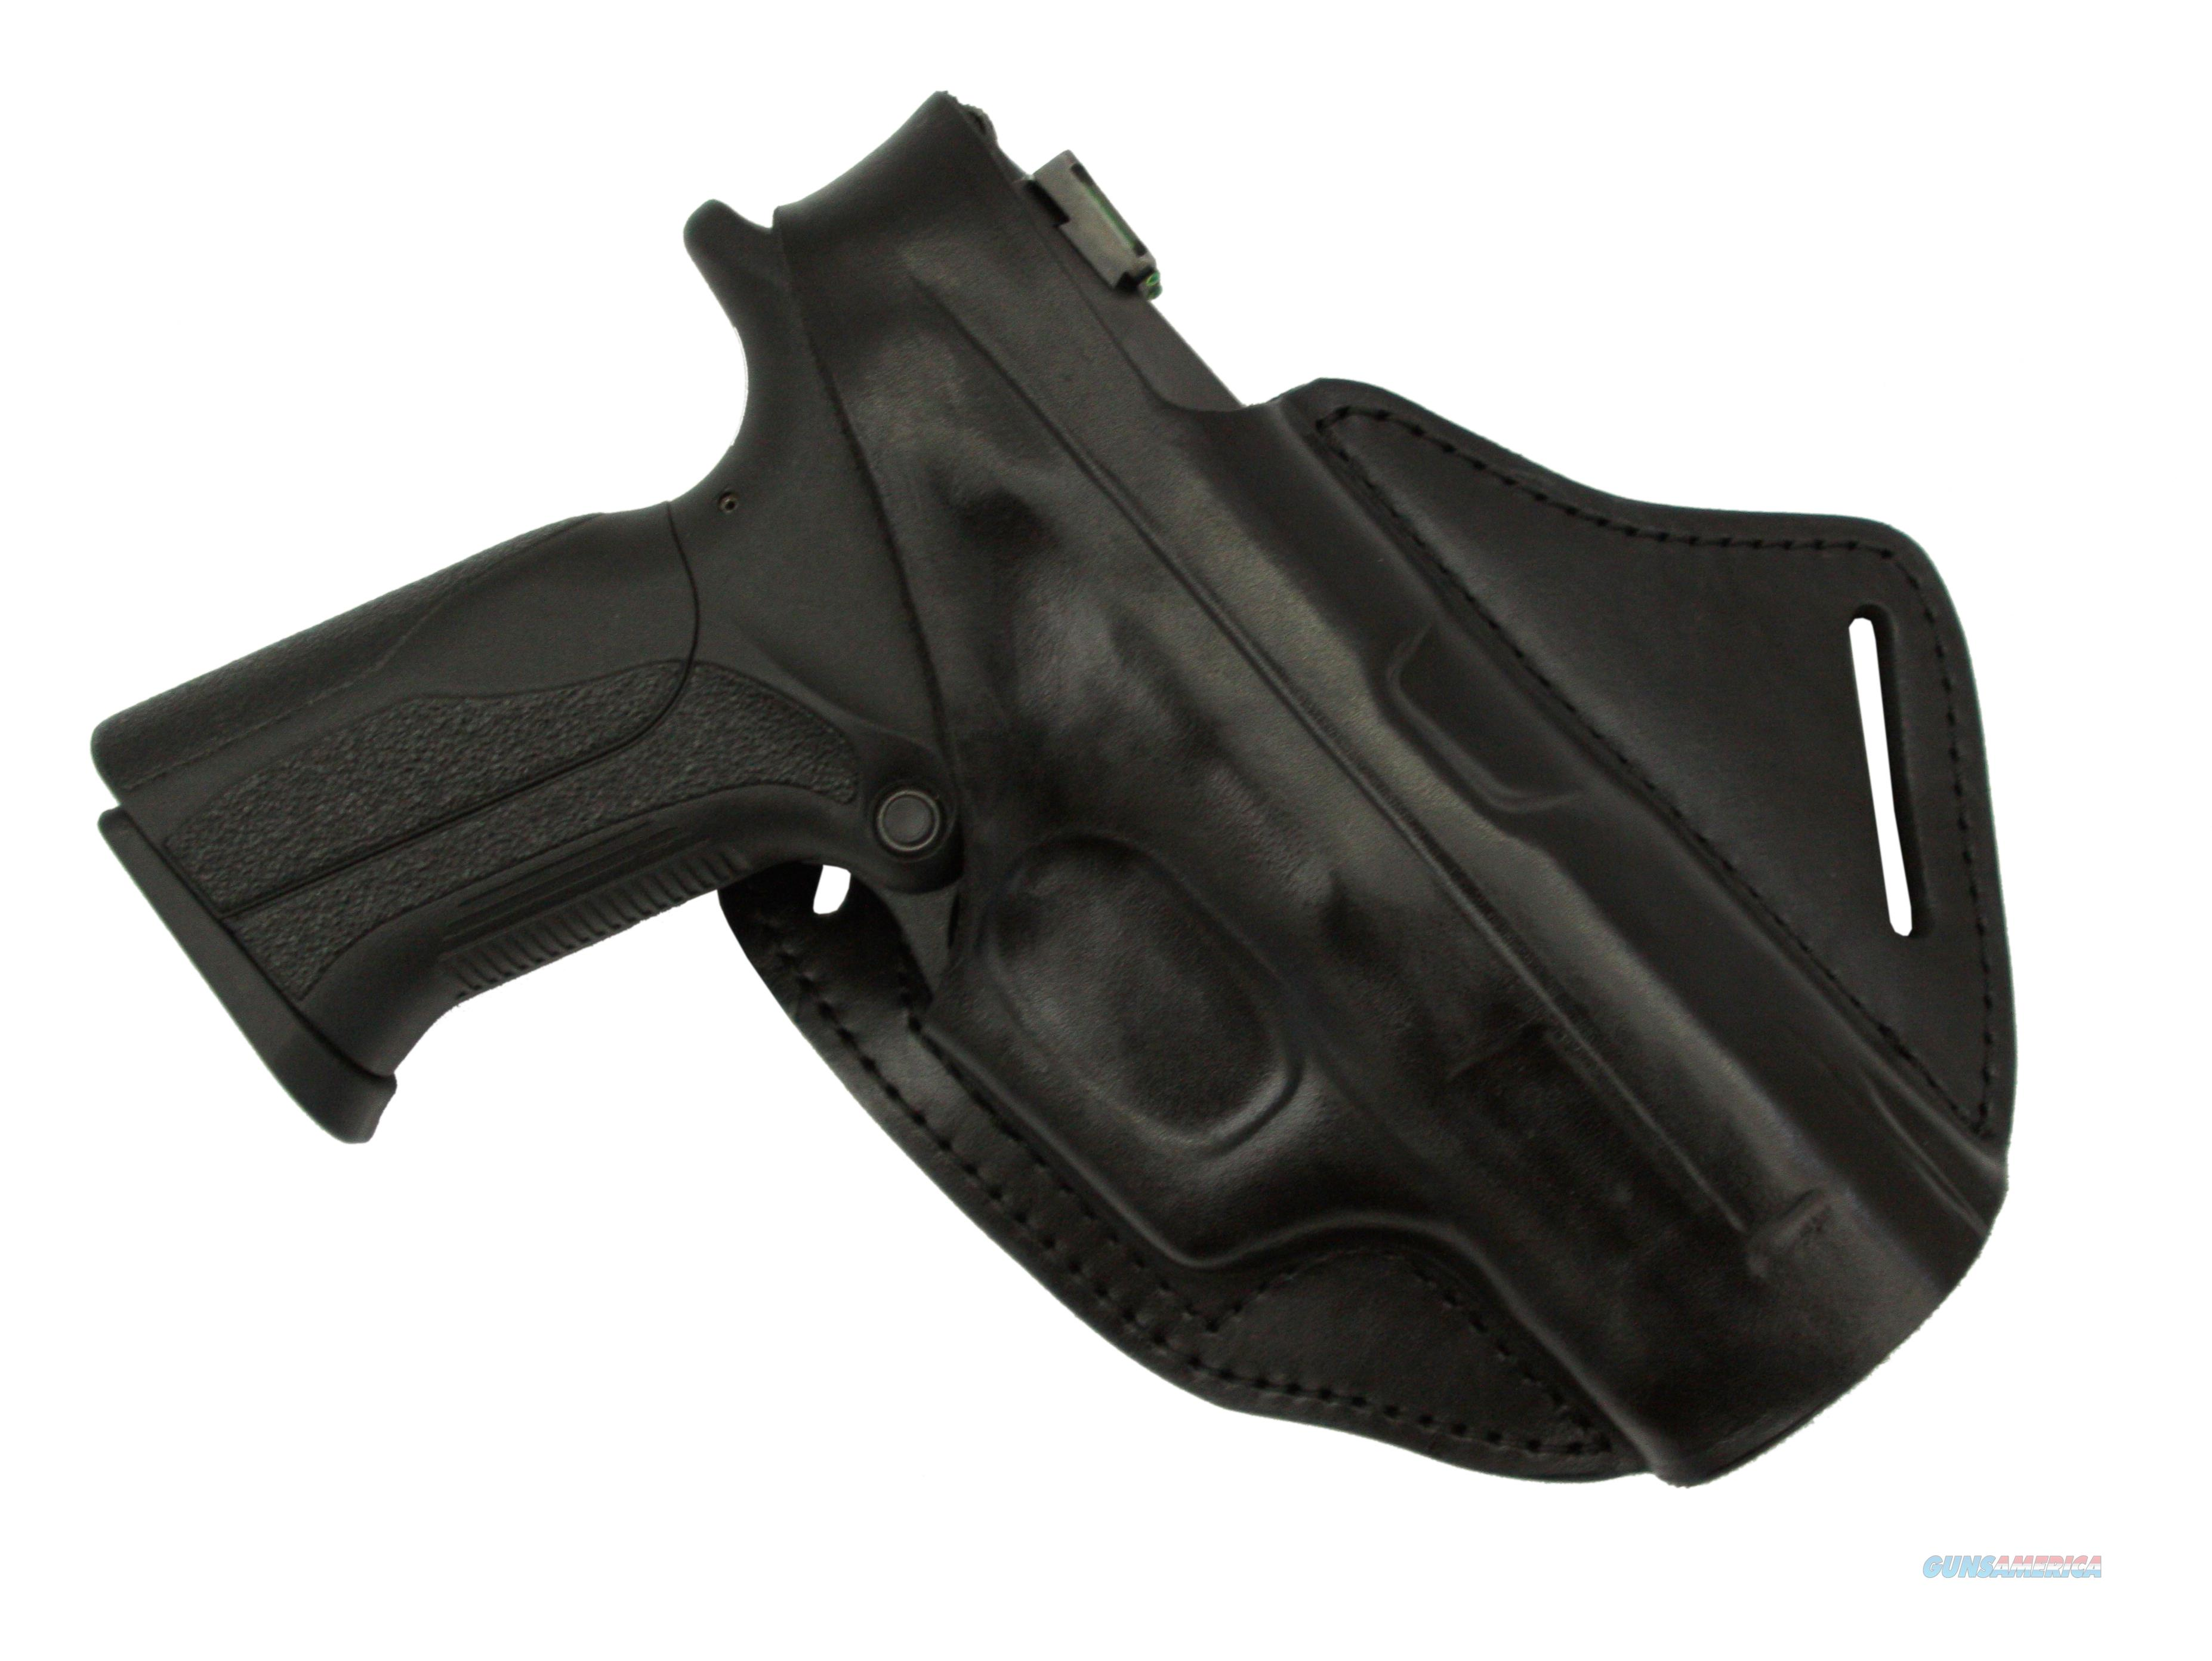 Cross Draw leather belt holster Springfield XD  Non-Guns > Holsters and Gunleather > Concealed Carry